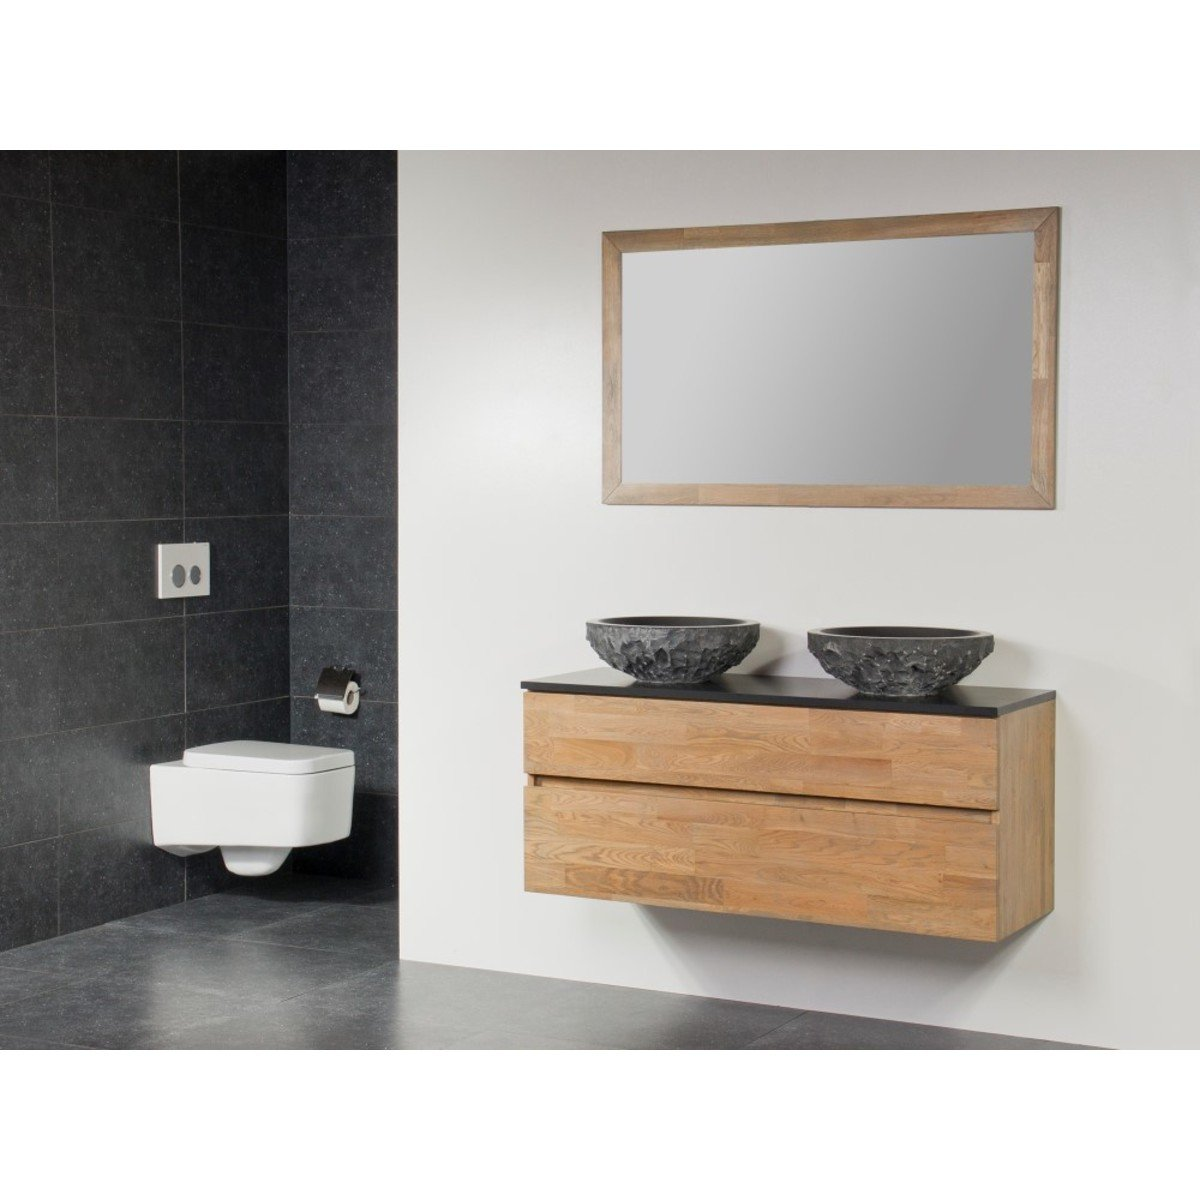 saniclass natural wood meuble salle de bain avec miroir 120cm suspendu grey wash avec 2 vasques. Black Bedroom Furniture Sets. Home Design Ideas